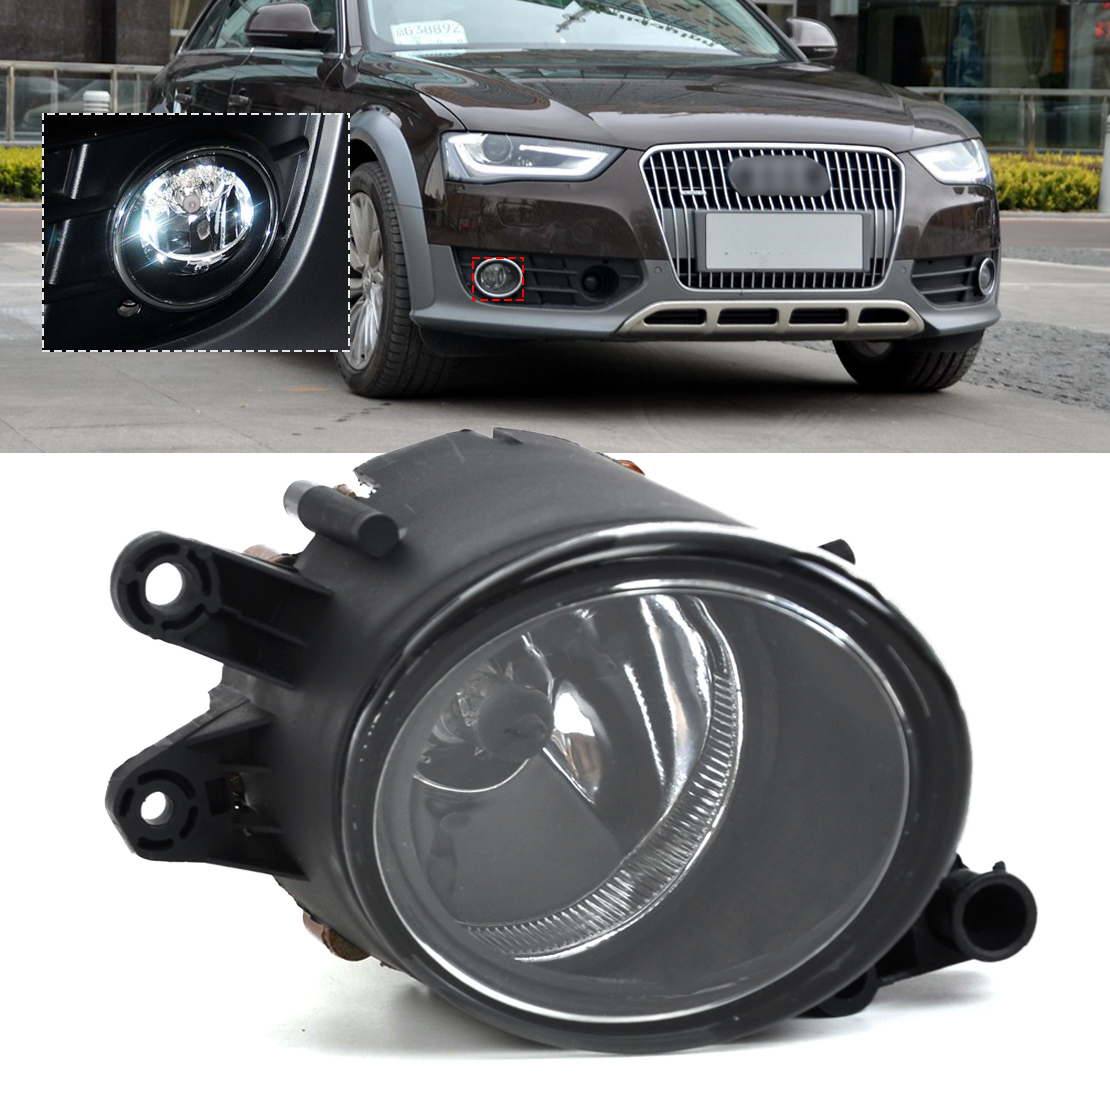 DWCX 8E0941700B Front Right Fog Light Lamp for Audi A4 B6/A4 B7/A4 Quattro 2001 2002 2003 2004 2005 2006 2007 2008 for vw golf 5 2004 2005 2006 2007 2008 2009 right side high quality 9 led front fog lamp fog light